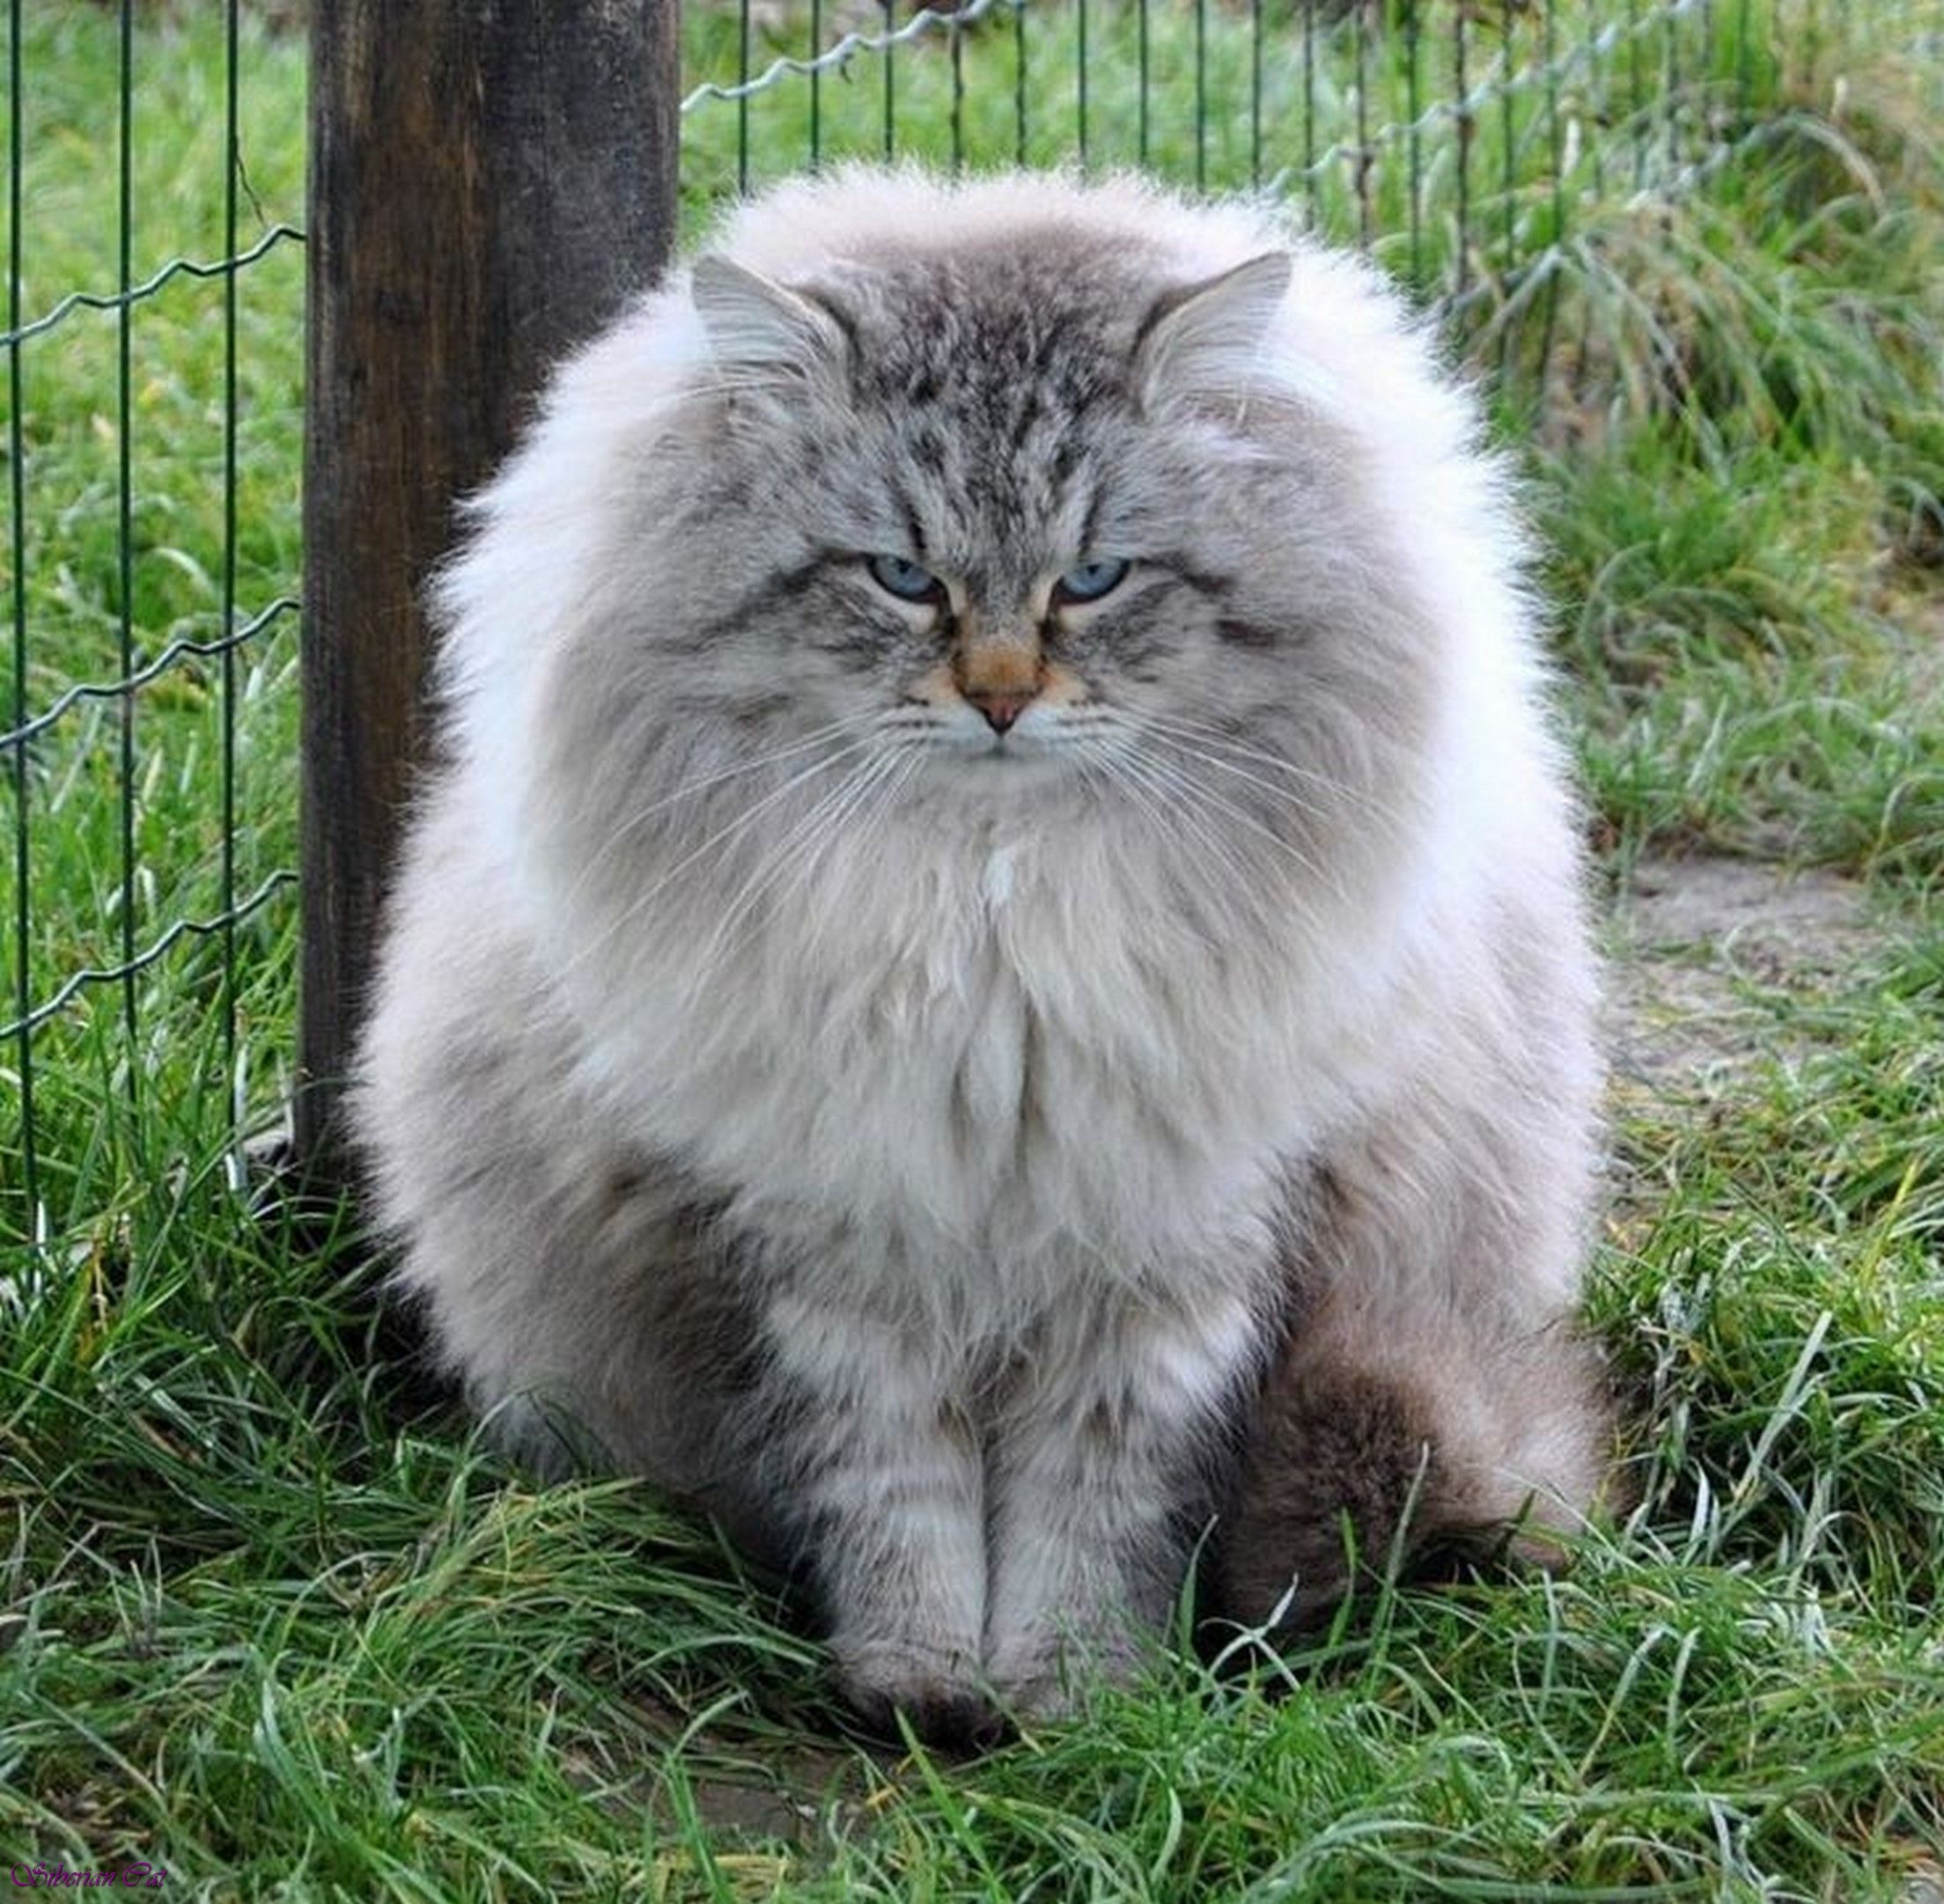 Hypoallergenic Siberian Cats Siberian Cat Breed Siberiancat Siberiankittens Siberiankitties Siberian Forest Cat Cat Breeds Domestic Cat Breeds